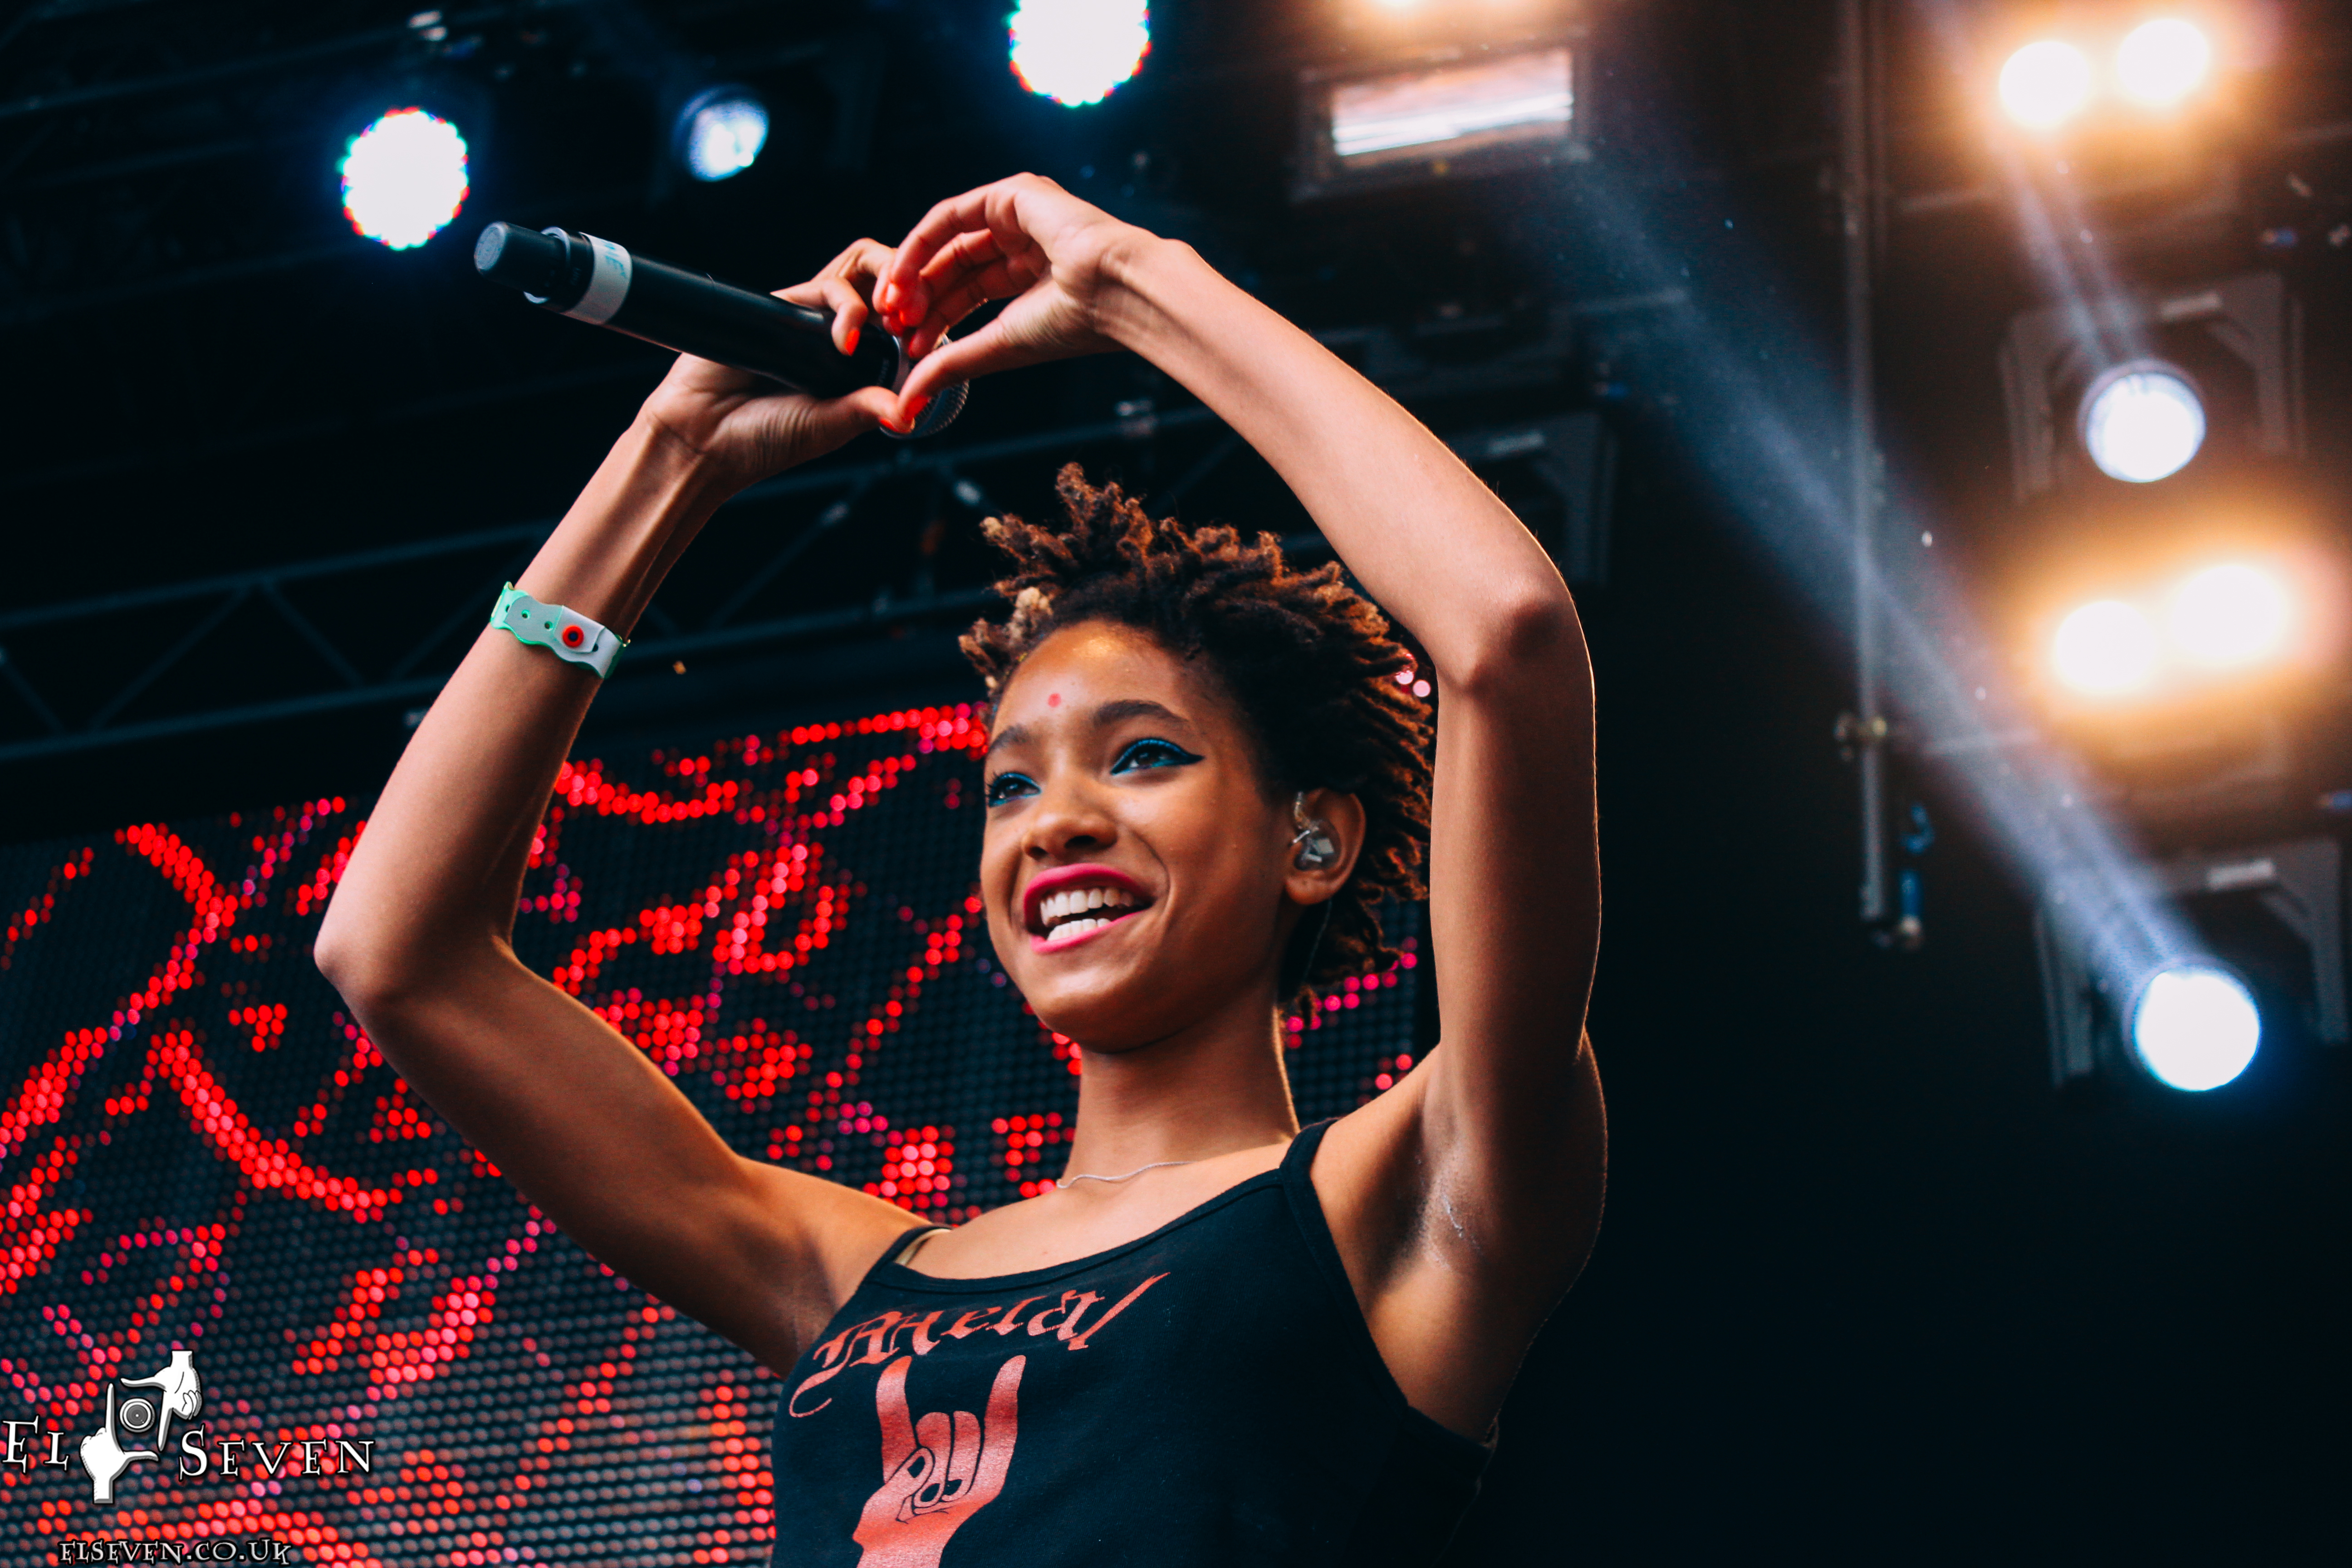 Willow Smith Was 'Bullied in School' for Liking Rock Music